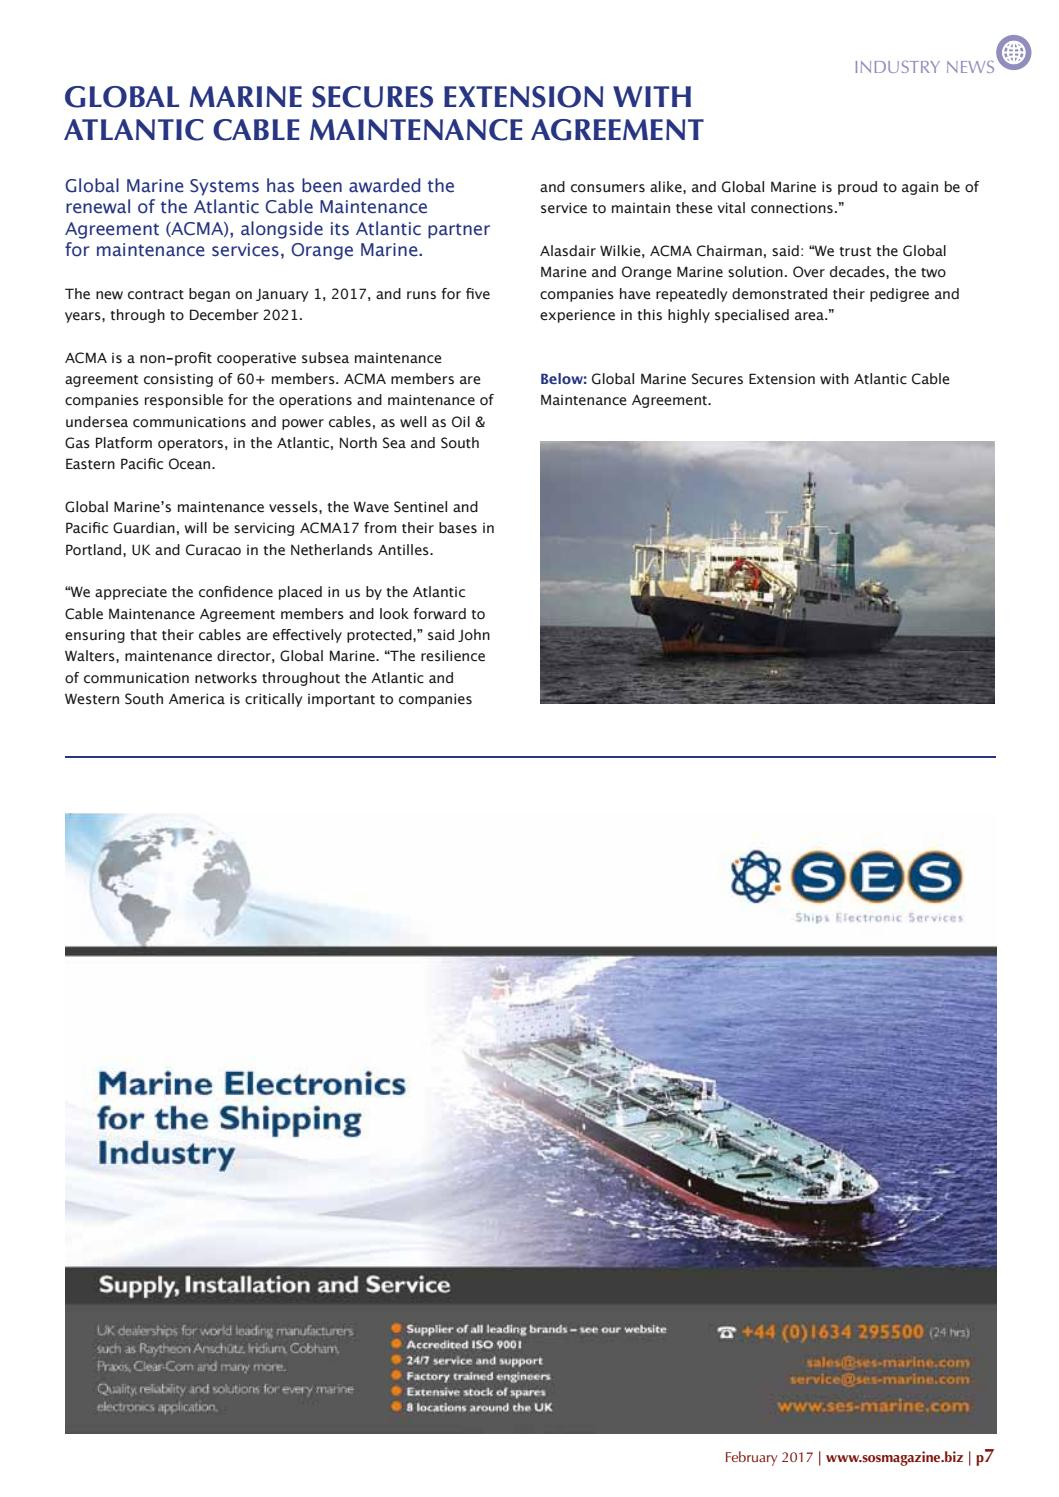 Subsea & Offshore Service Magazine February 2017 by